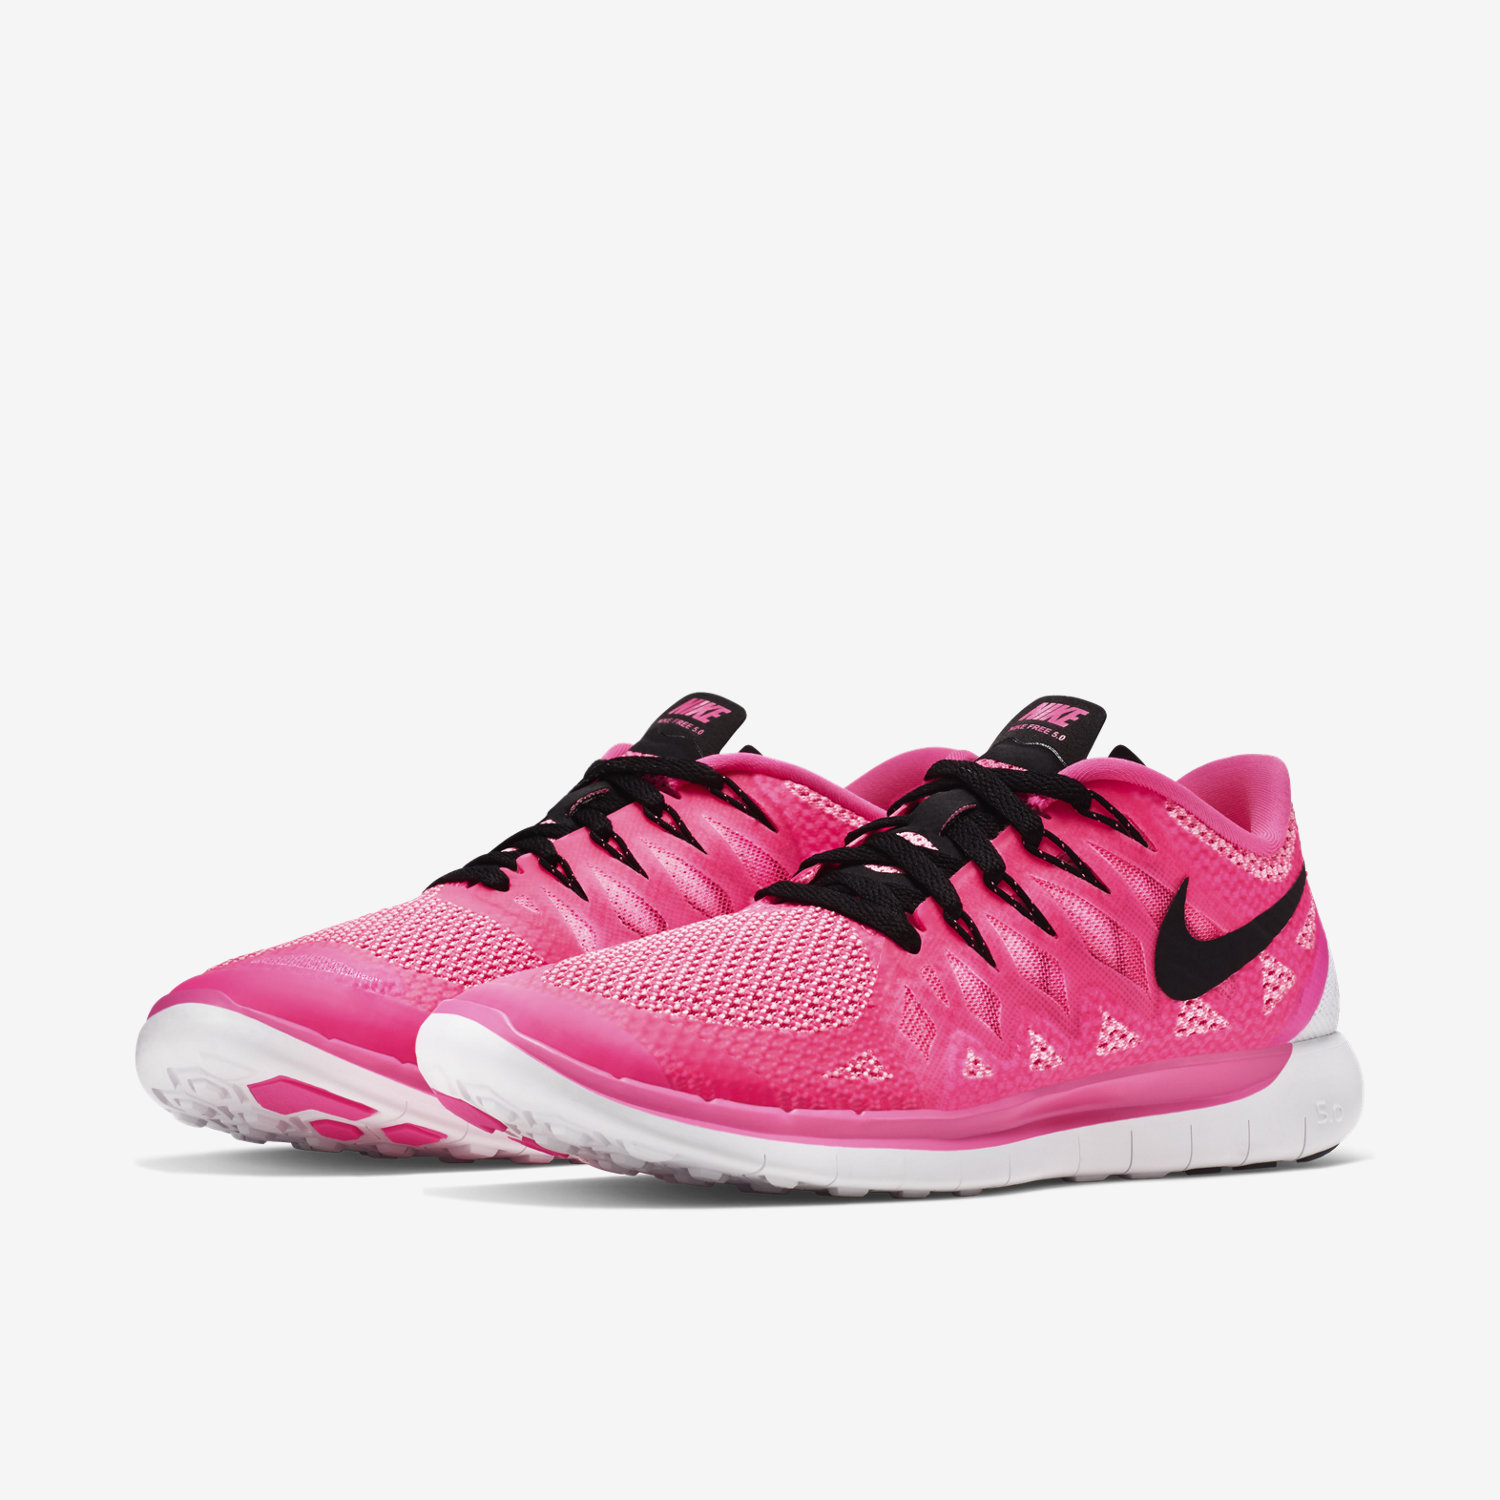 buy womens nike shoes online